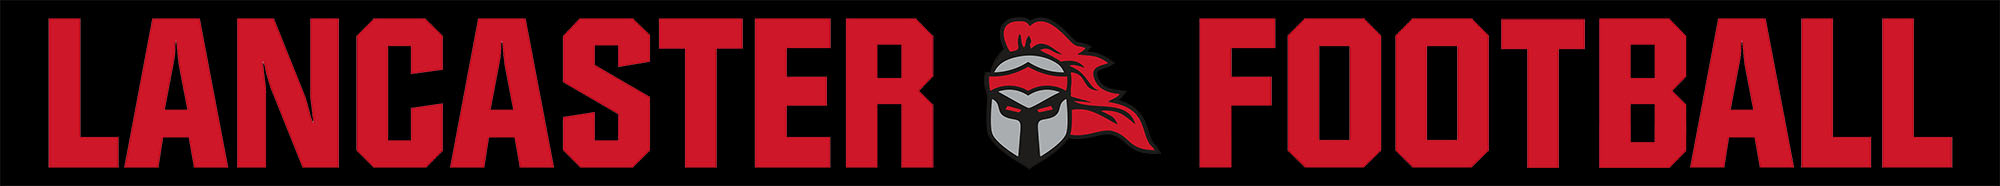 Lancaster Legends Football desktop header